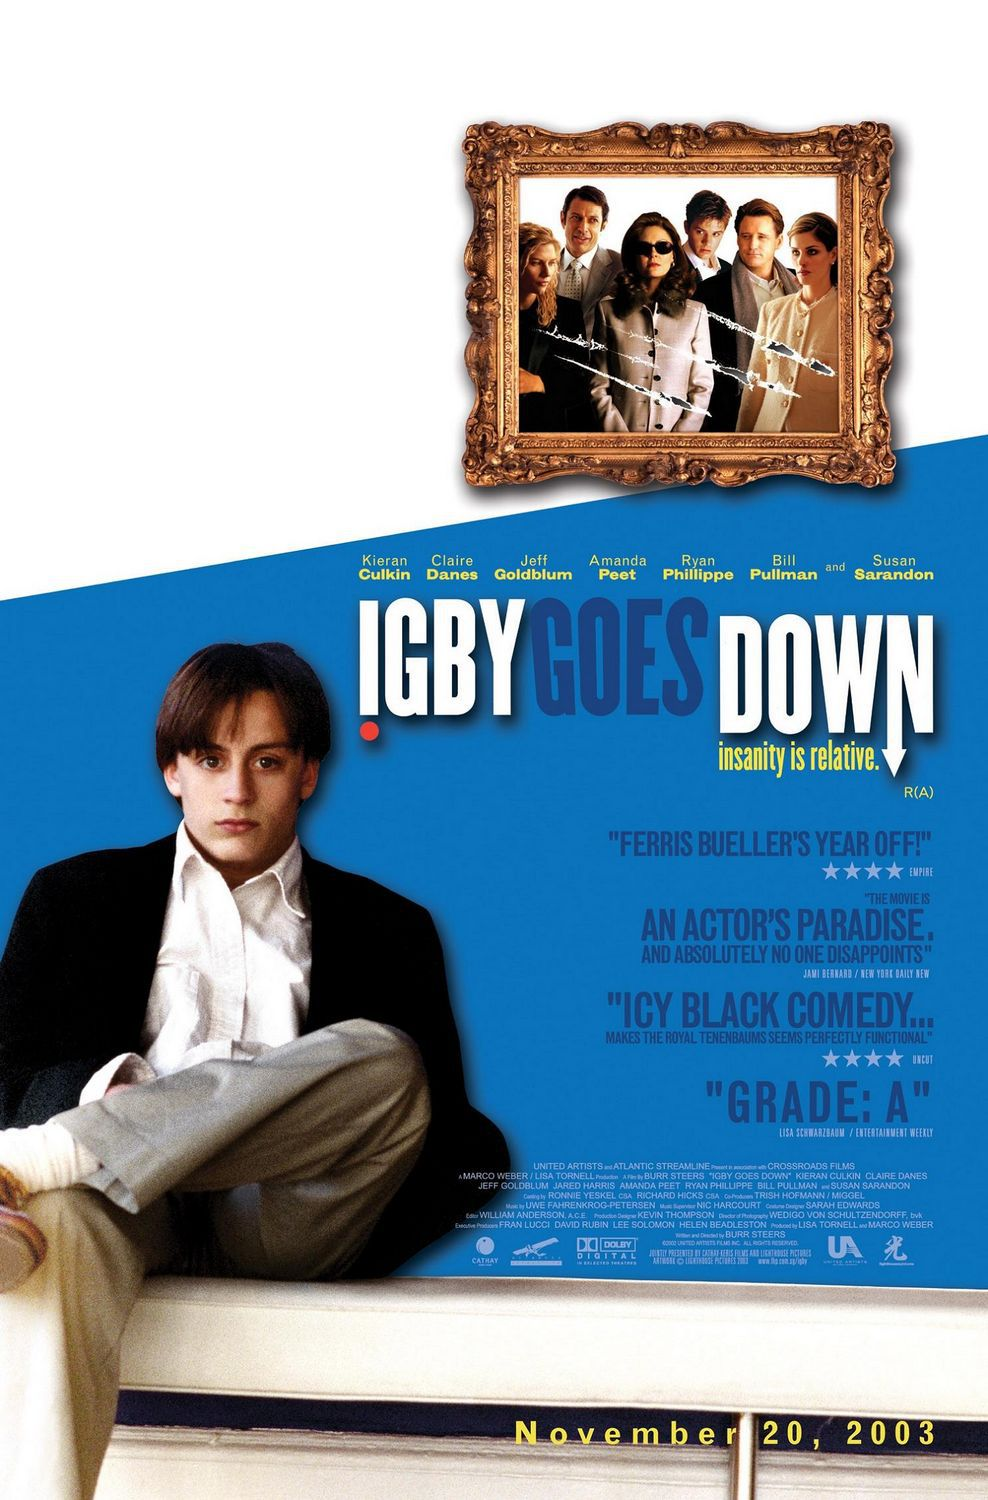 Film - Igby goes down ... con Kieran Culkin